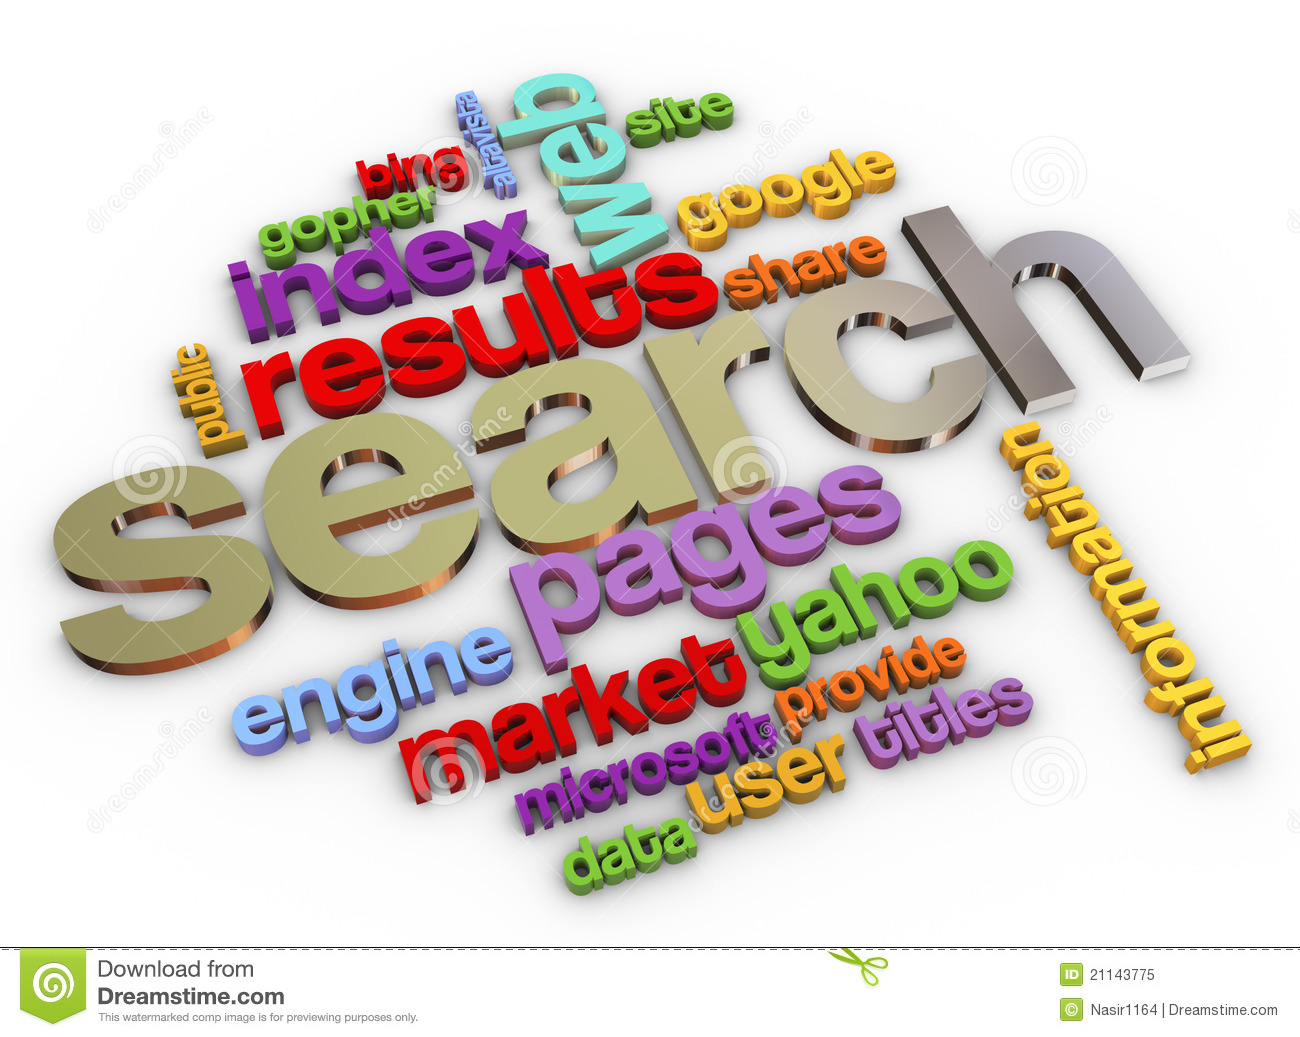 3d search engine royalty free stock photo image 21143775 for 3d search engine